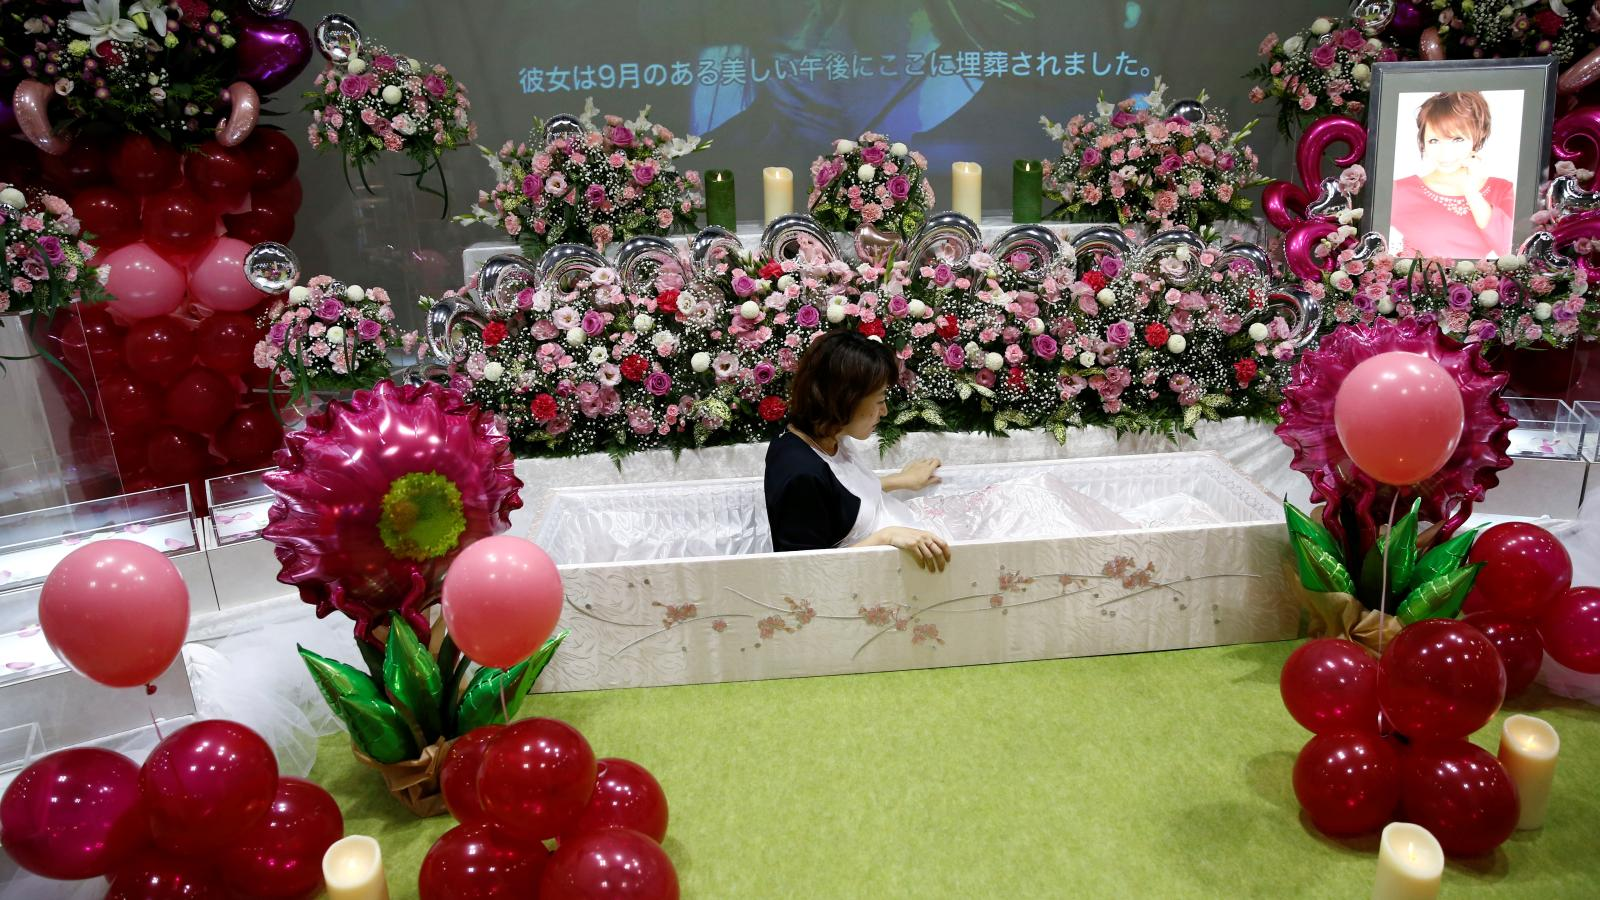 Funeral Homes And The Death Industry Are Undergoing Radical Shifts